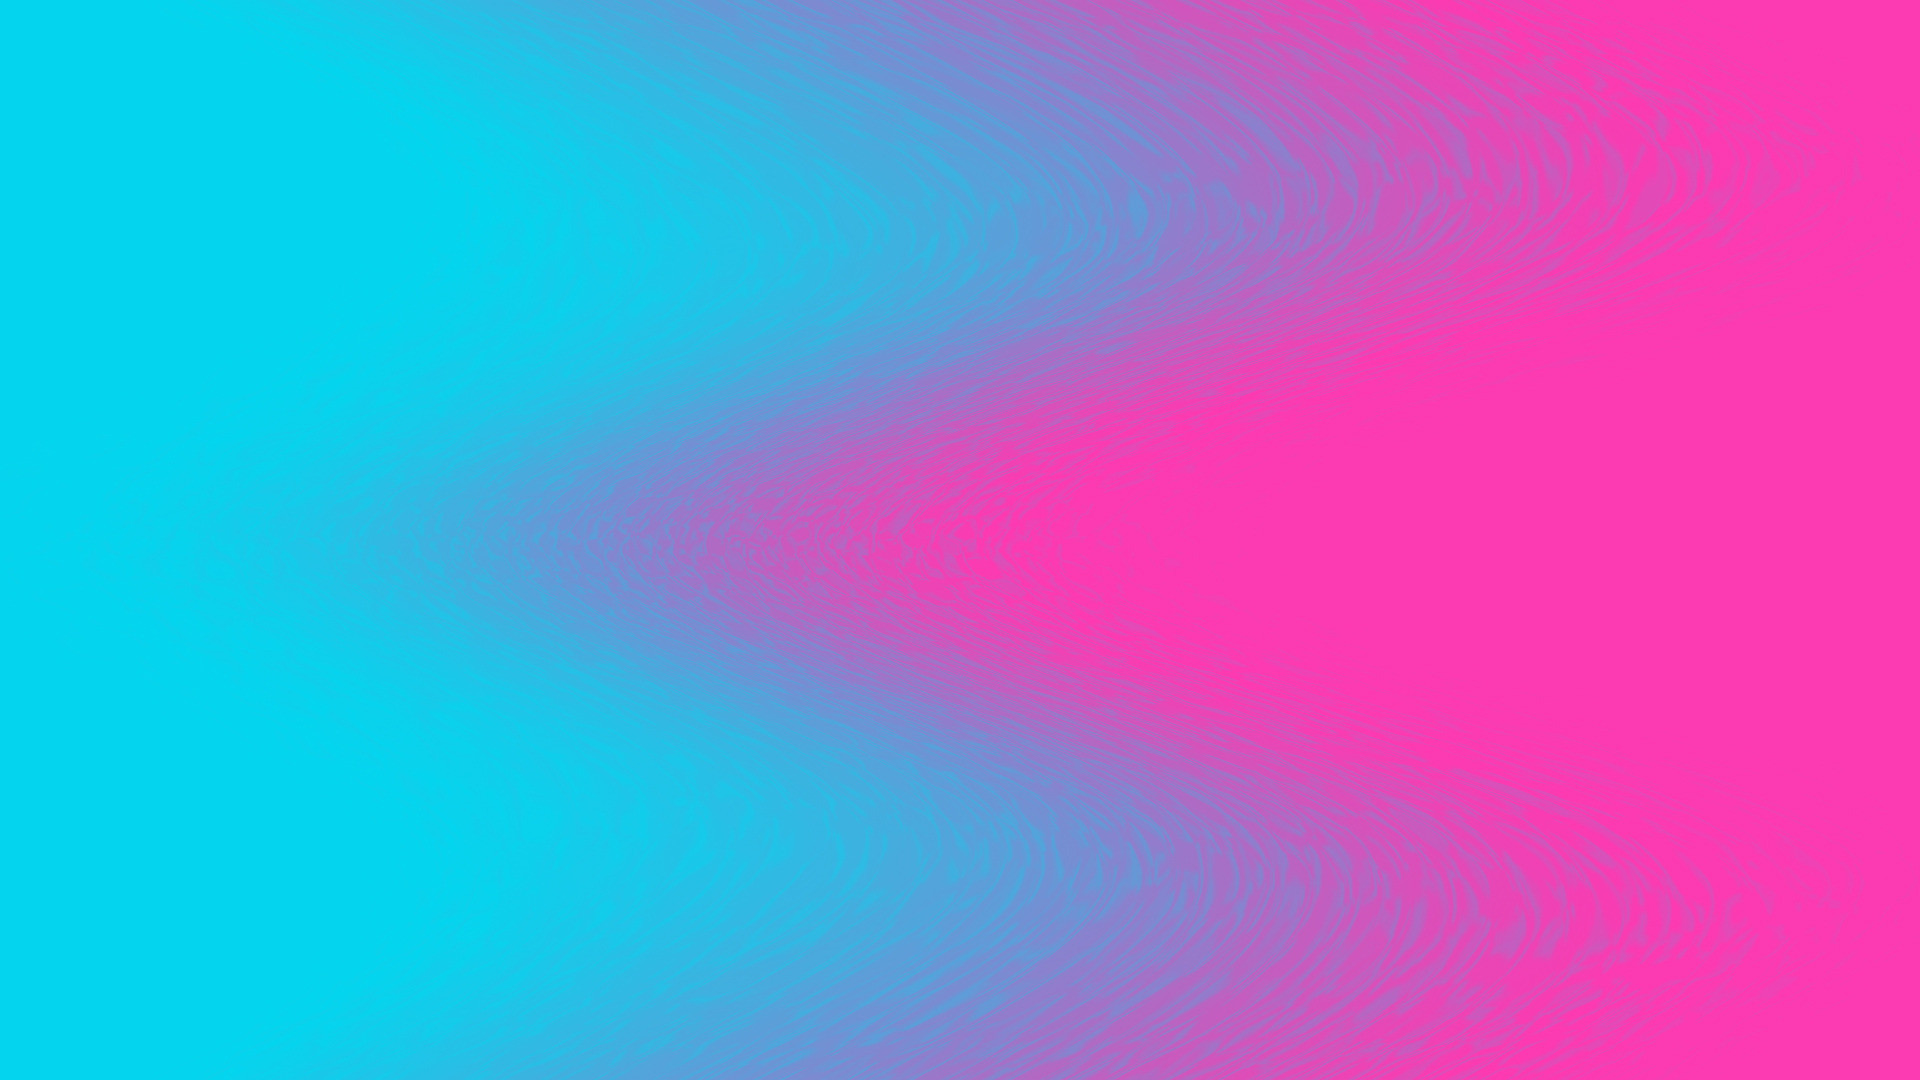 1920x1080 Desktop Blue And Pink Photos.